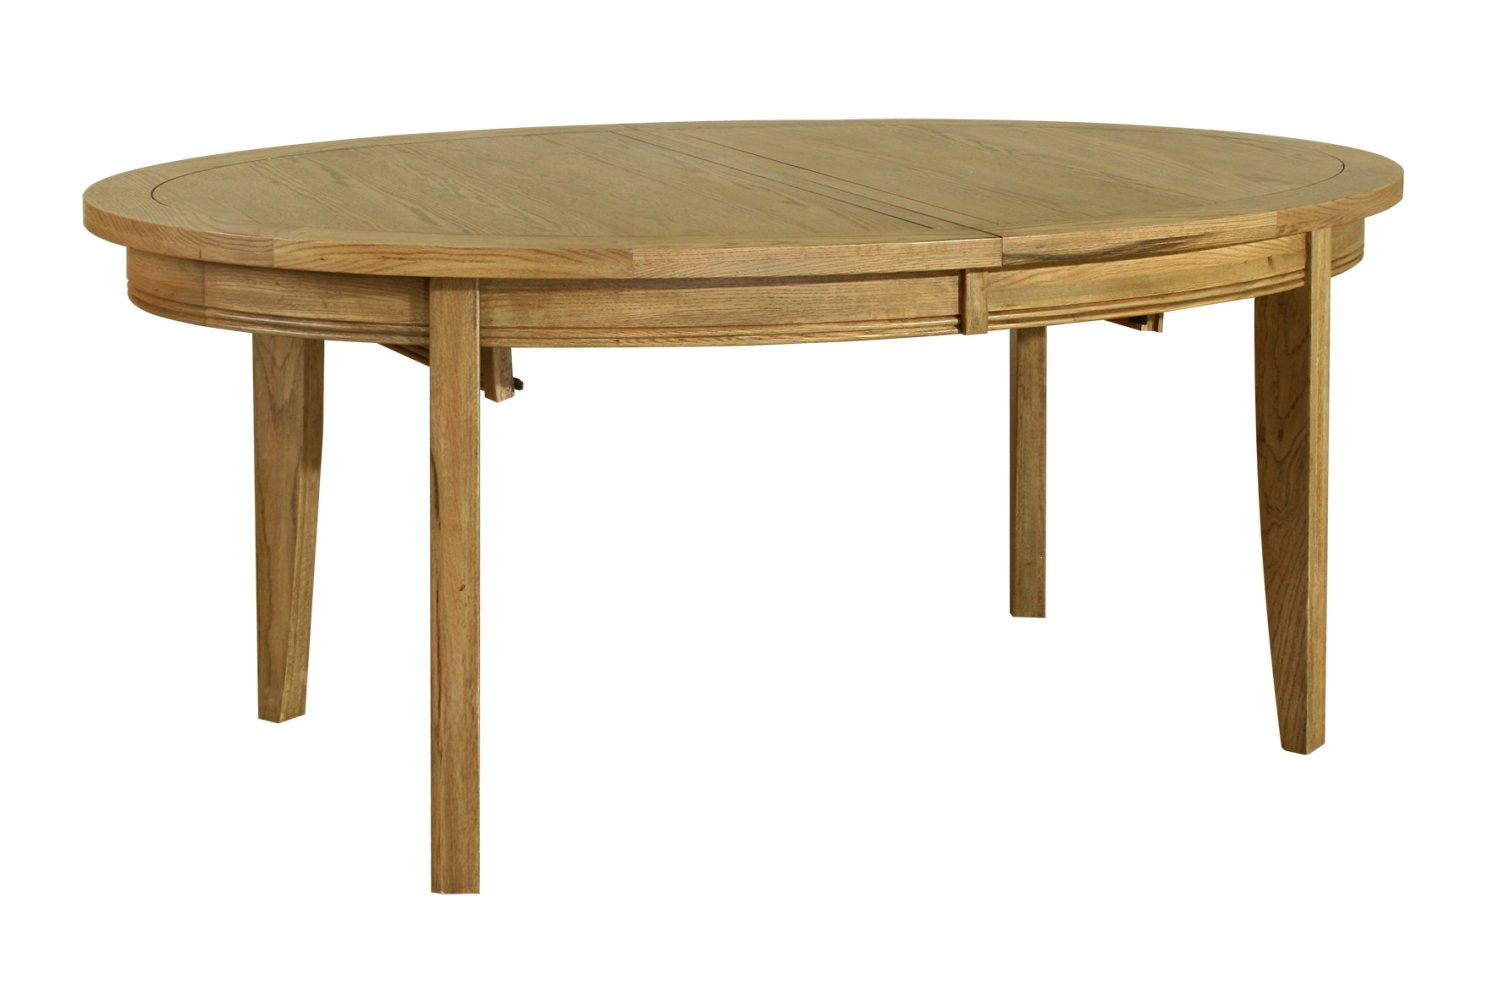 Linden solid oak dining room furniture oval extending for Wooden dining room furniture